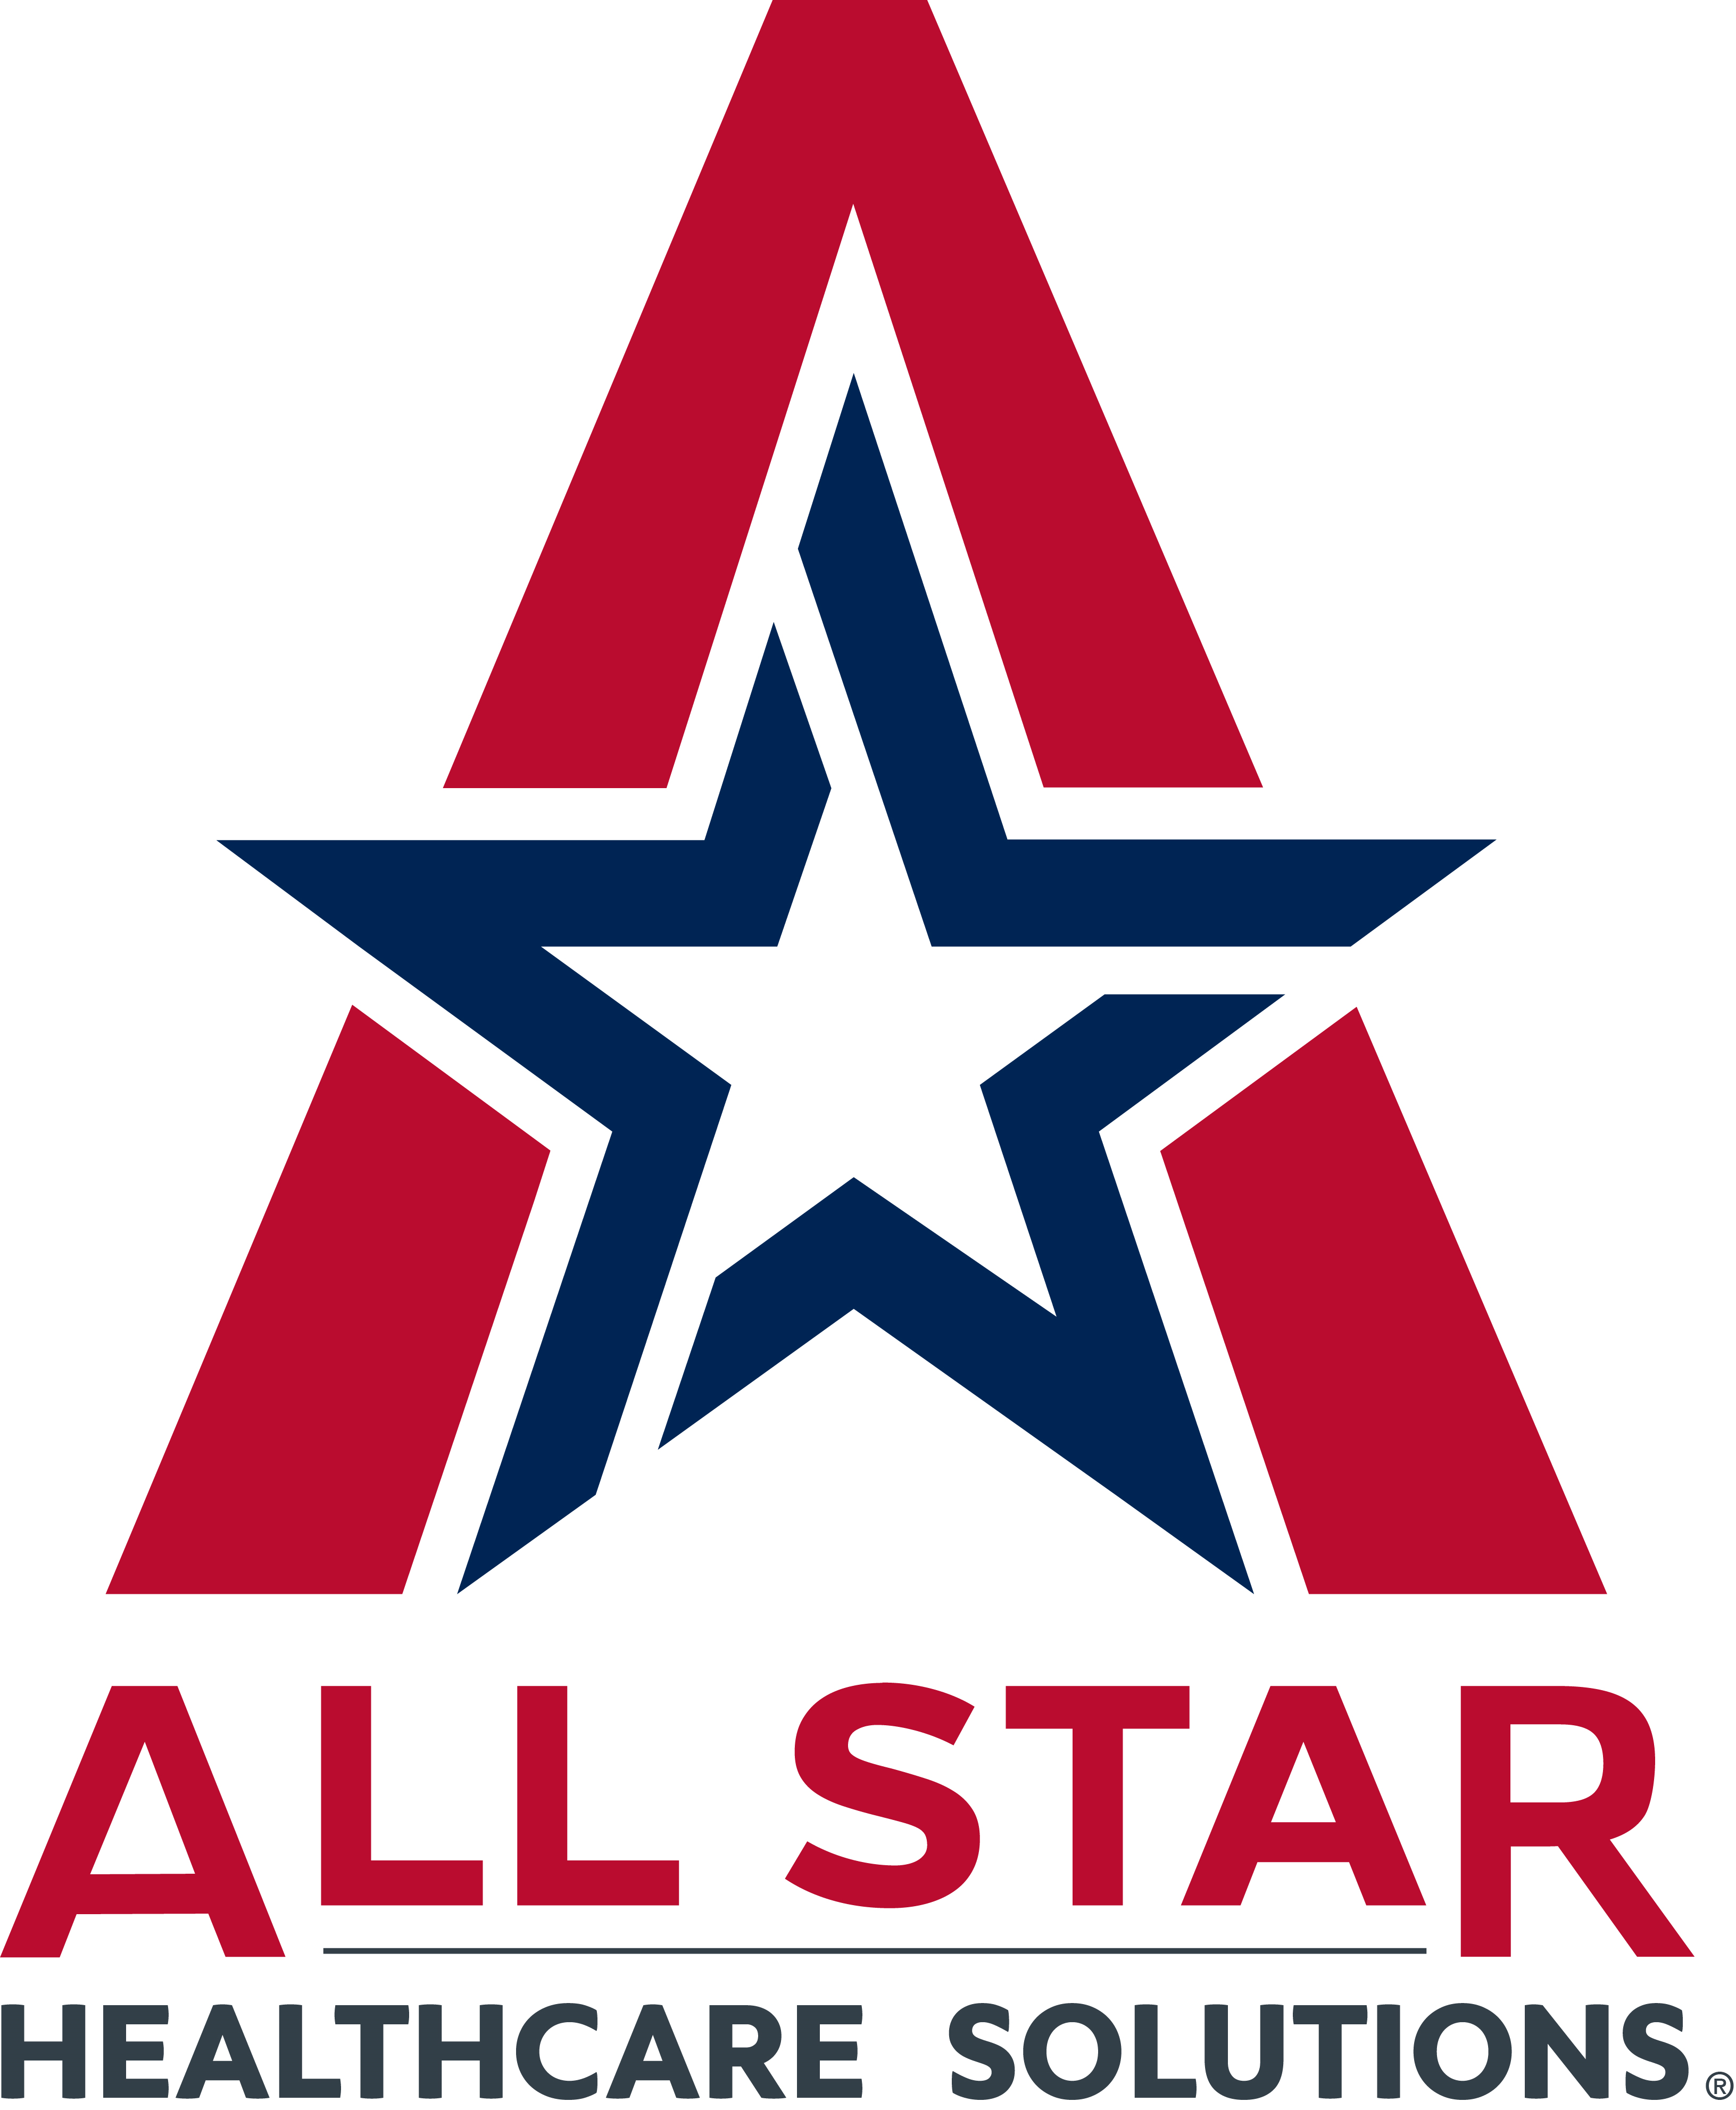 All Star Healthcare Solutions logo